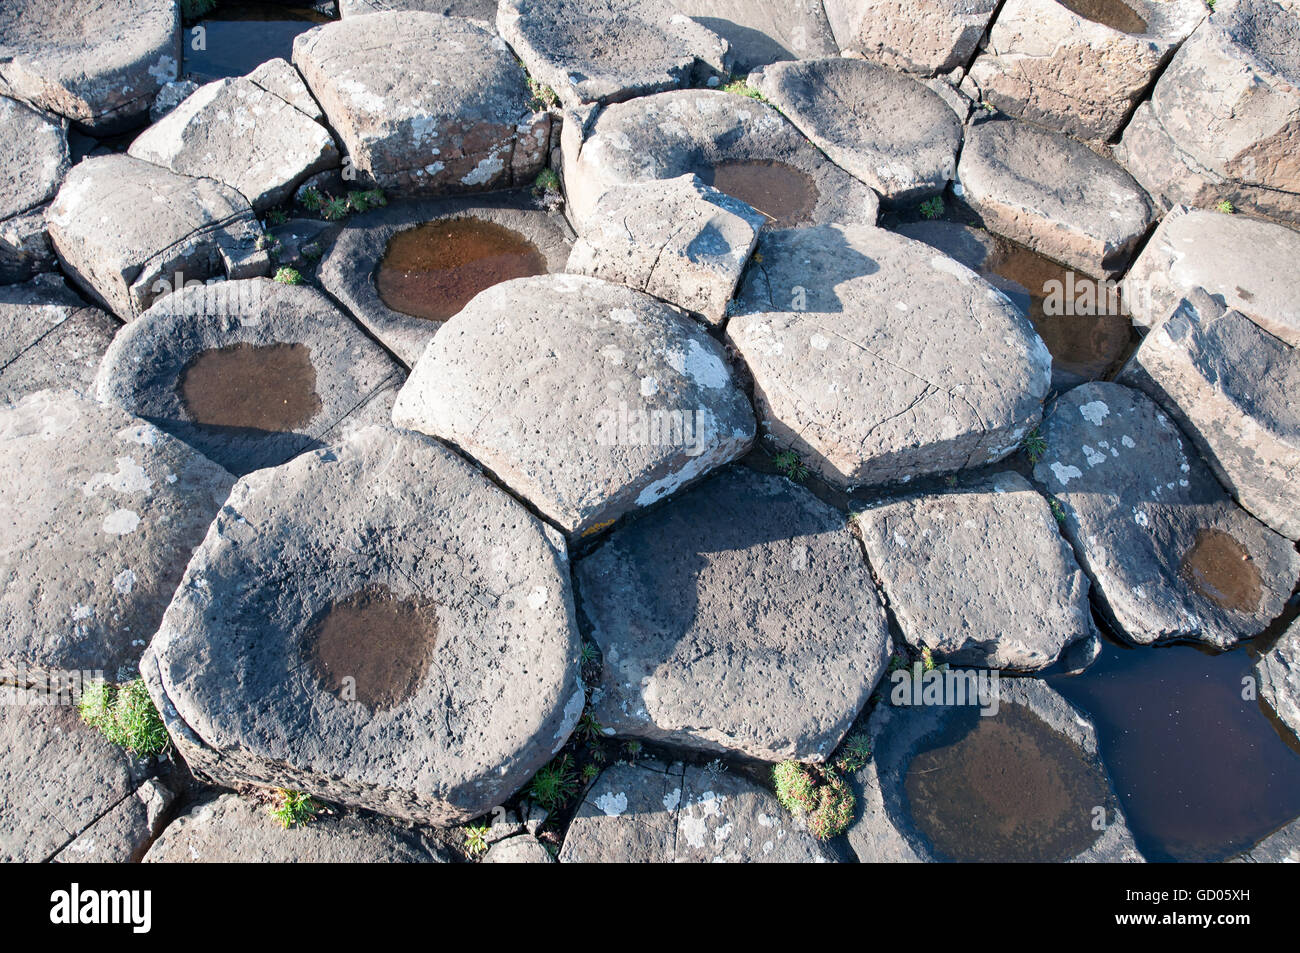 Giants Causeway. Unique geological hexagonal formations of volcanic basalt rocks on the coast in Northern Ireland, - Stock Image